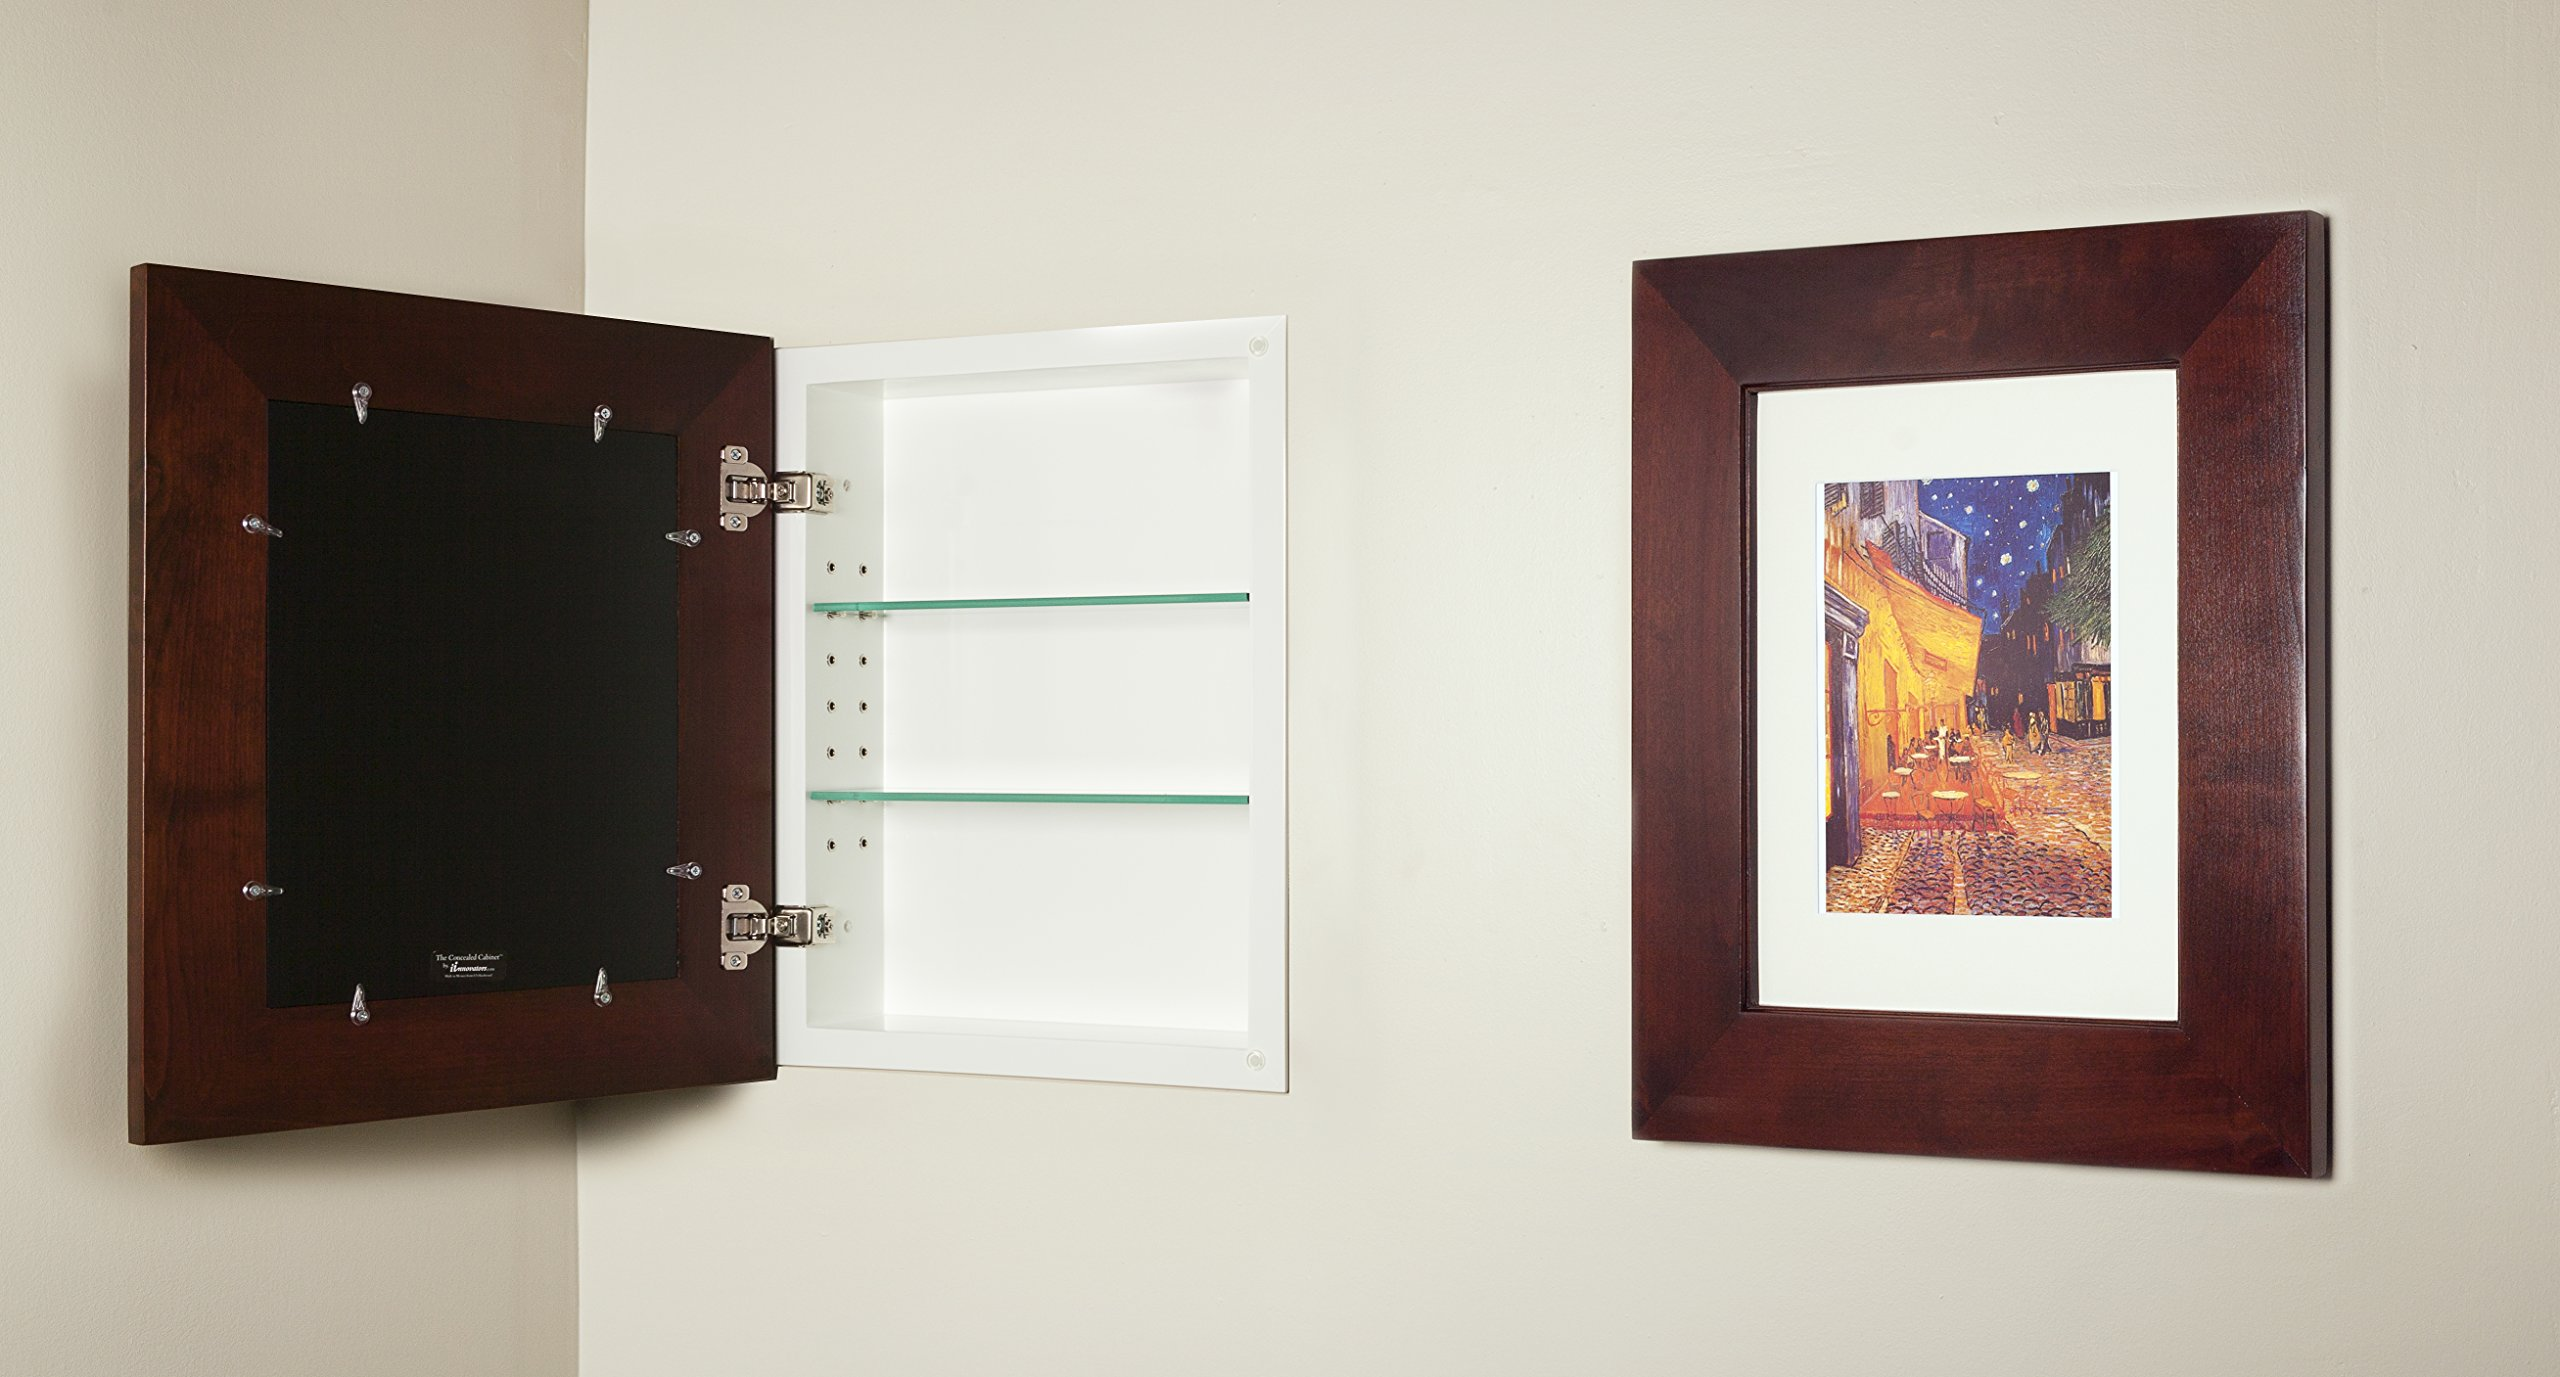 14x18 Espresso Concealed Cabinet (Large), a Recessed Mirrorless Medicine Cabinet with a Picture Frame Door